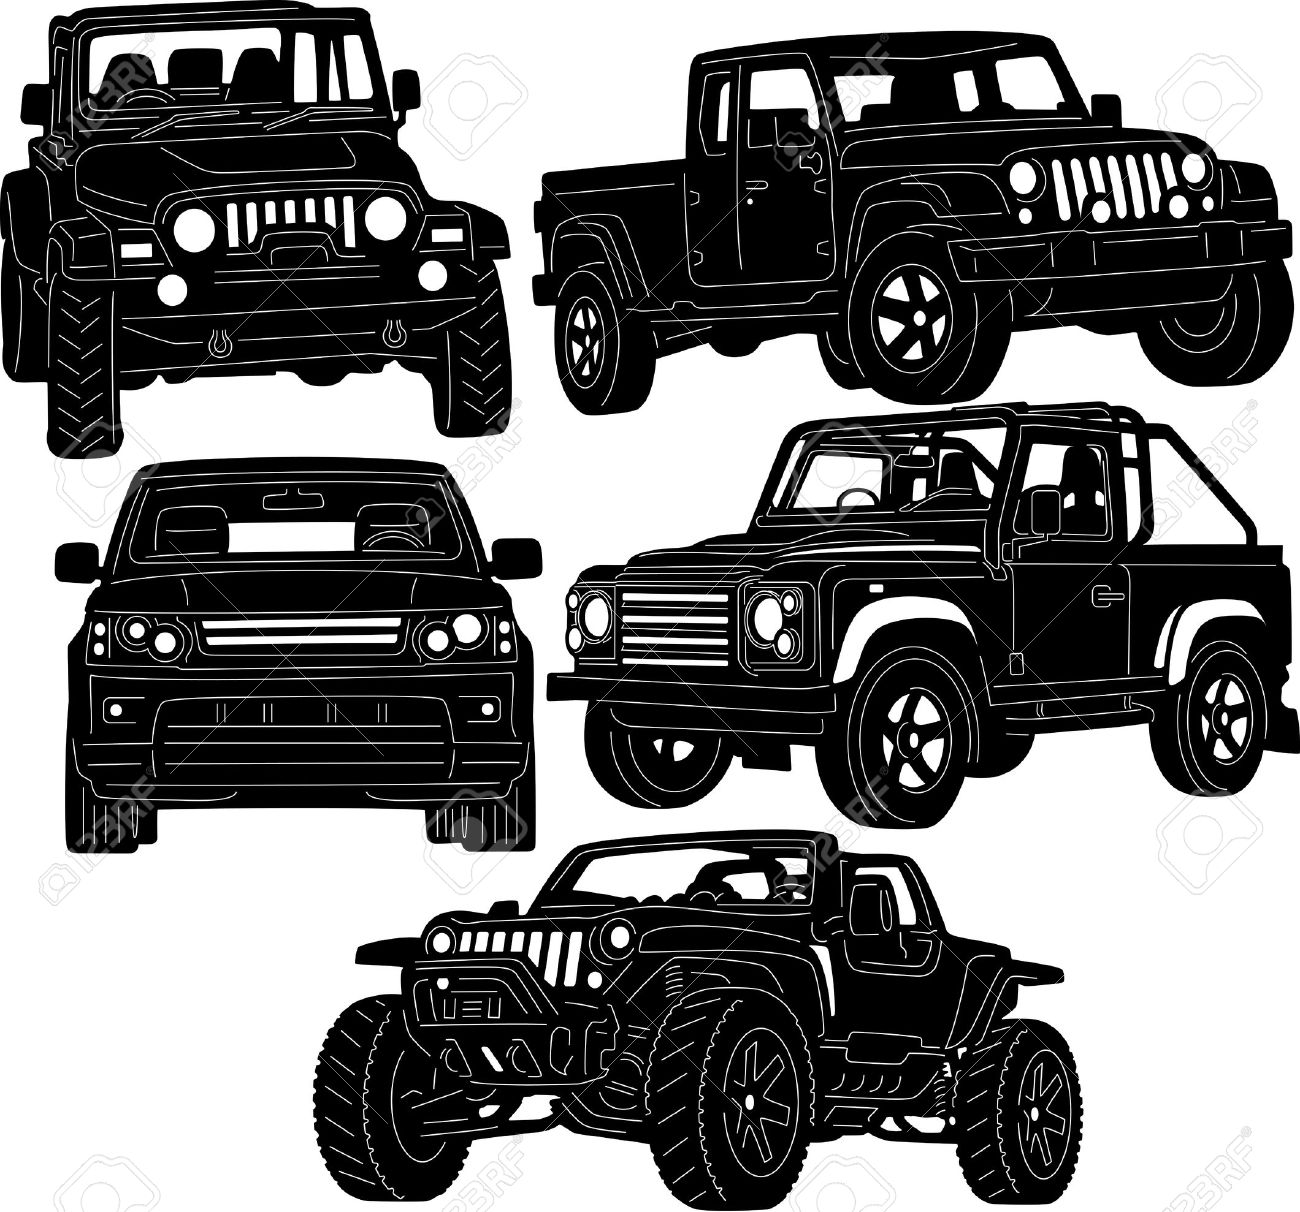 Off Road Truck Silhouette.